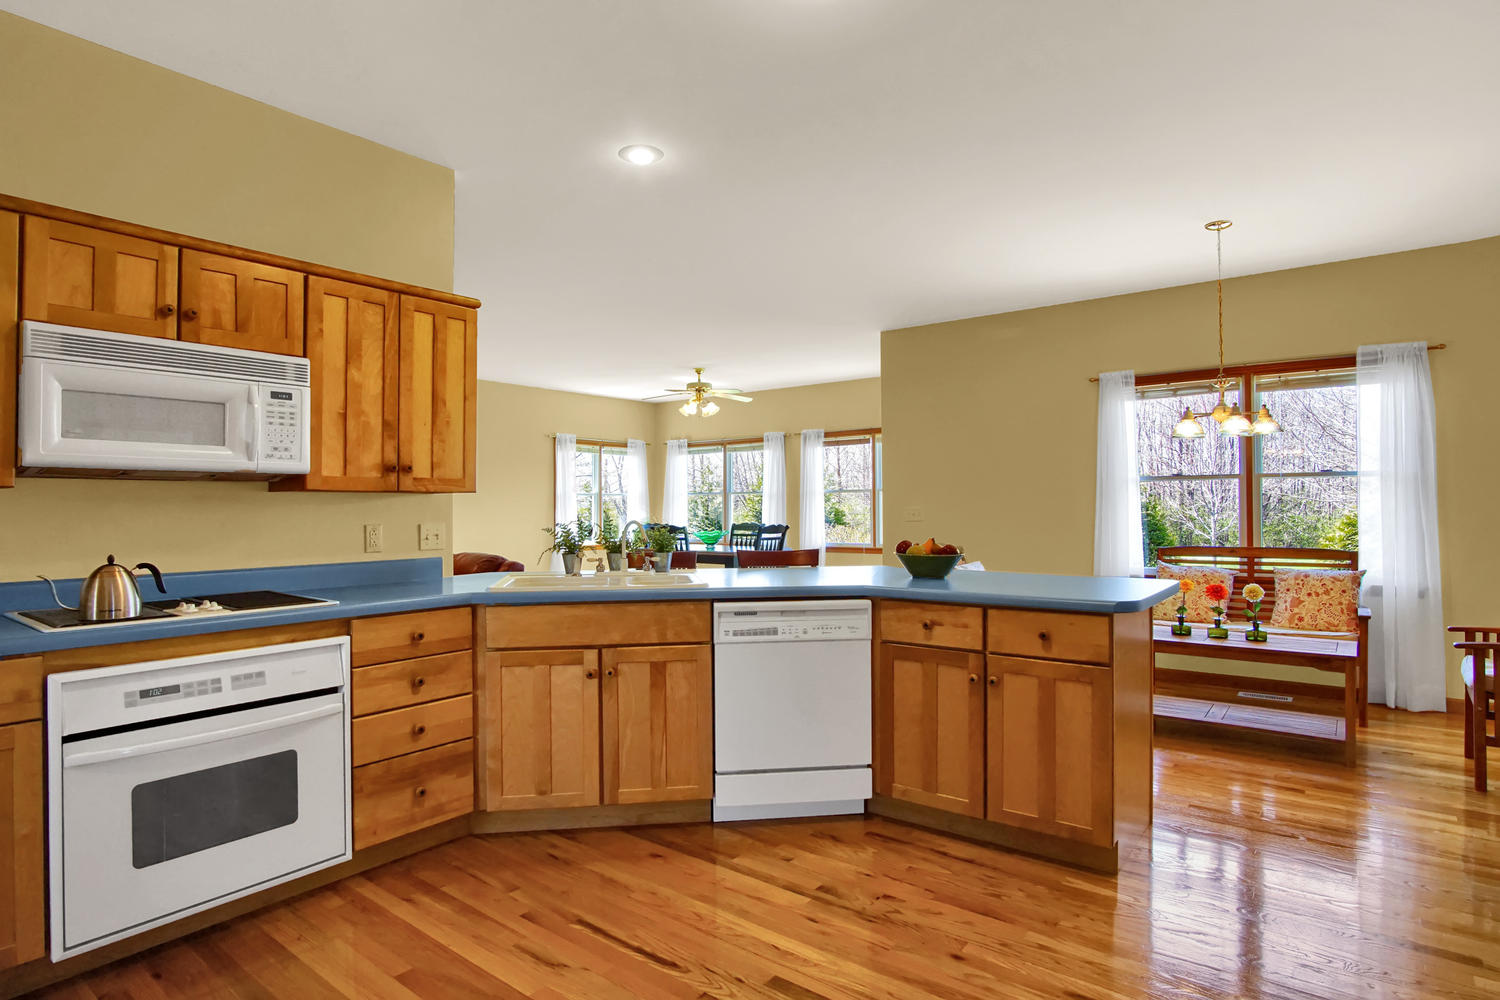 123 McKendree Park - Kitchen